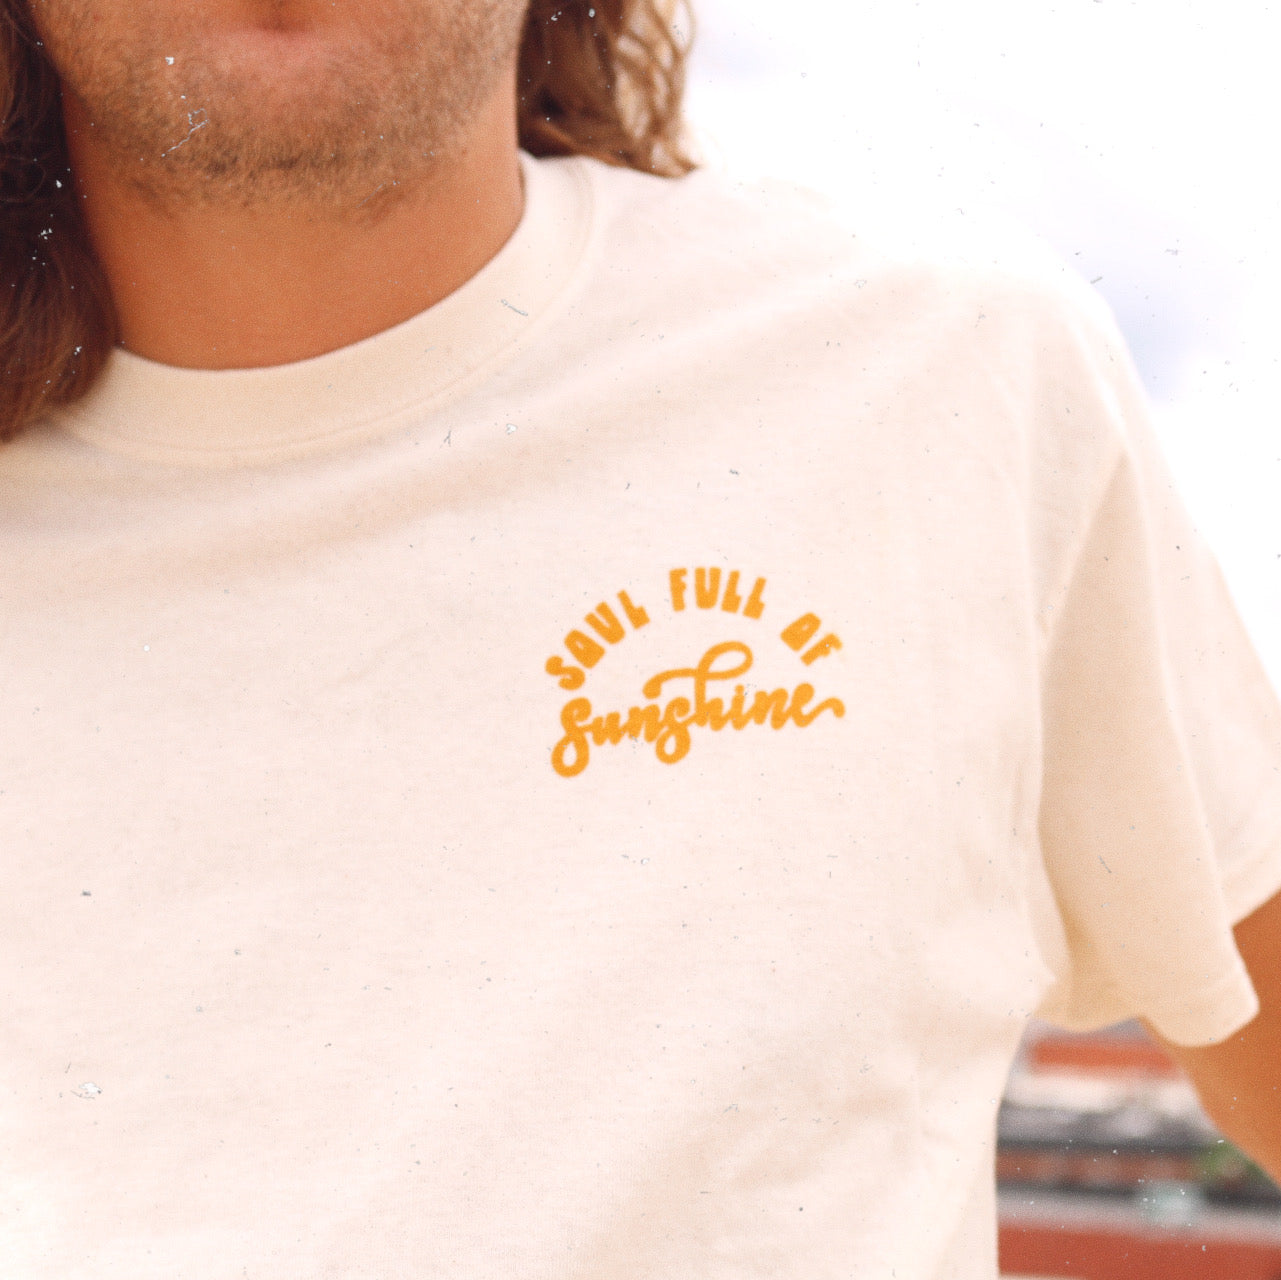 Soul Full of Sunshine - Shirt